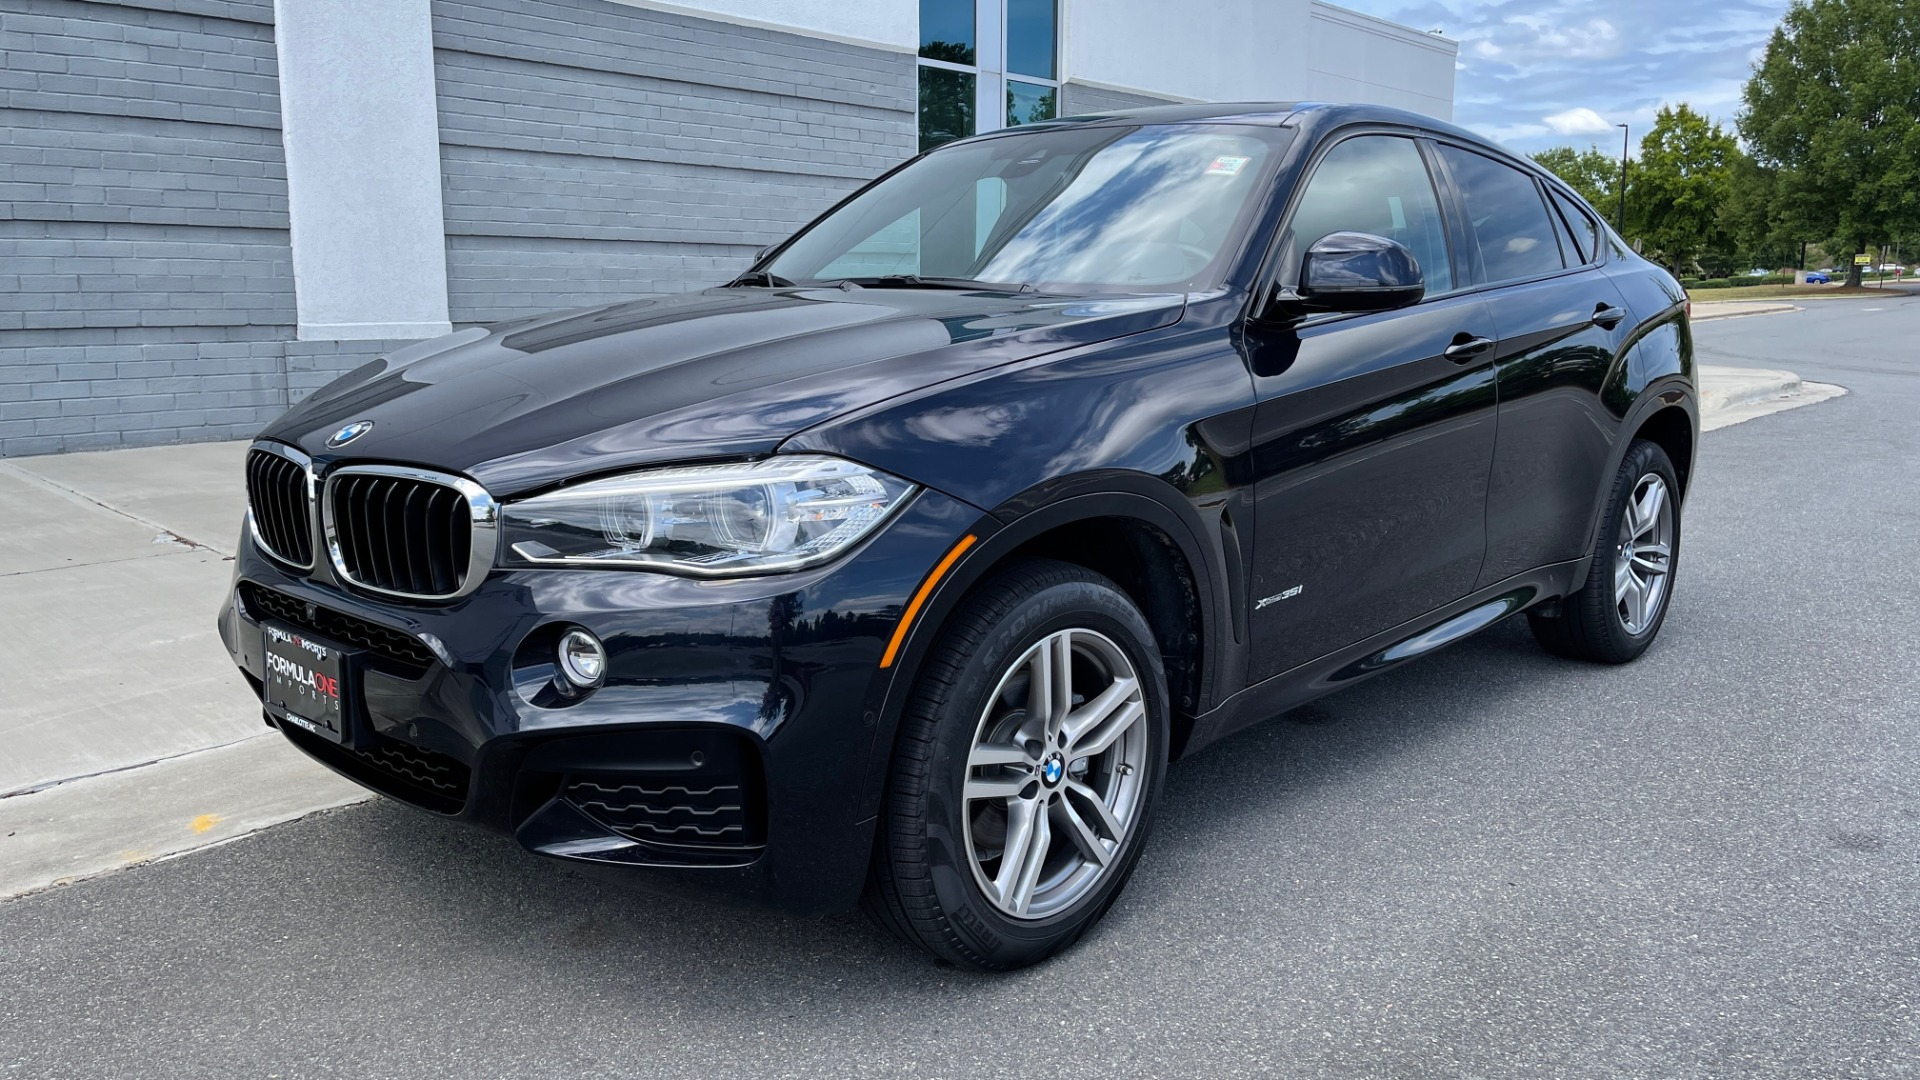 Used 2018 BMW X6 XDRIVE35I M-SPORT / DRVR ASST / PRK ASST / H/K SND / APPLE / WIRELESS CHARG for sale $51,995 at Formula Imports in Charlotte NC 28227 3